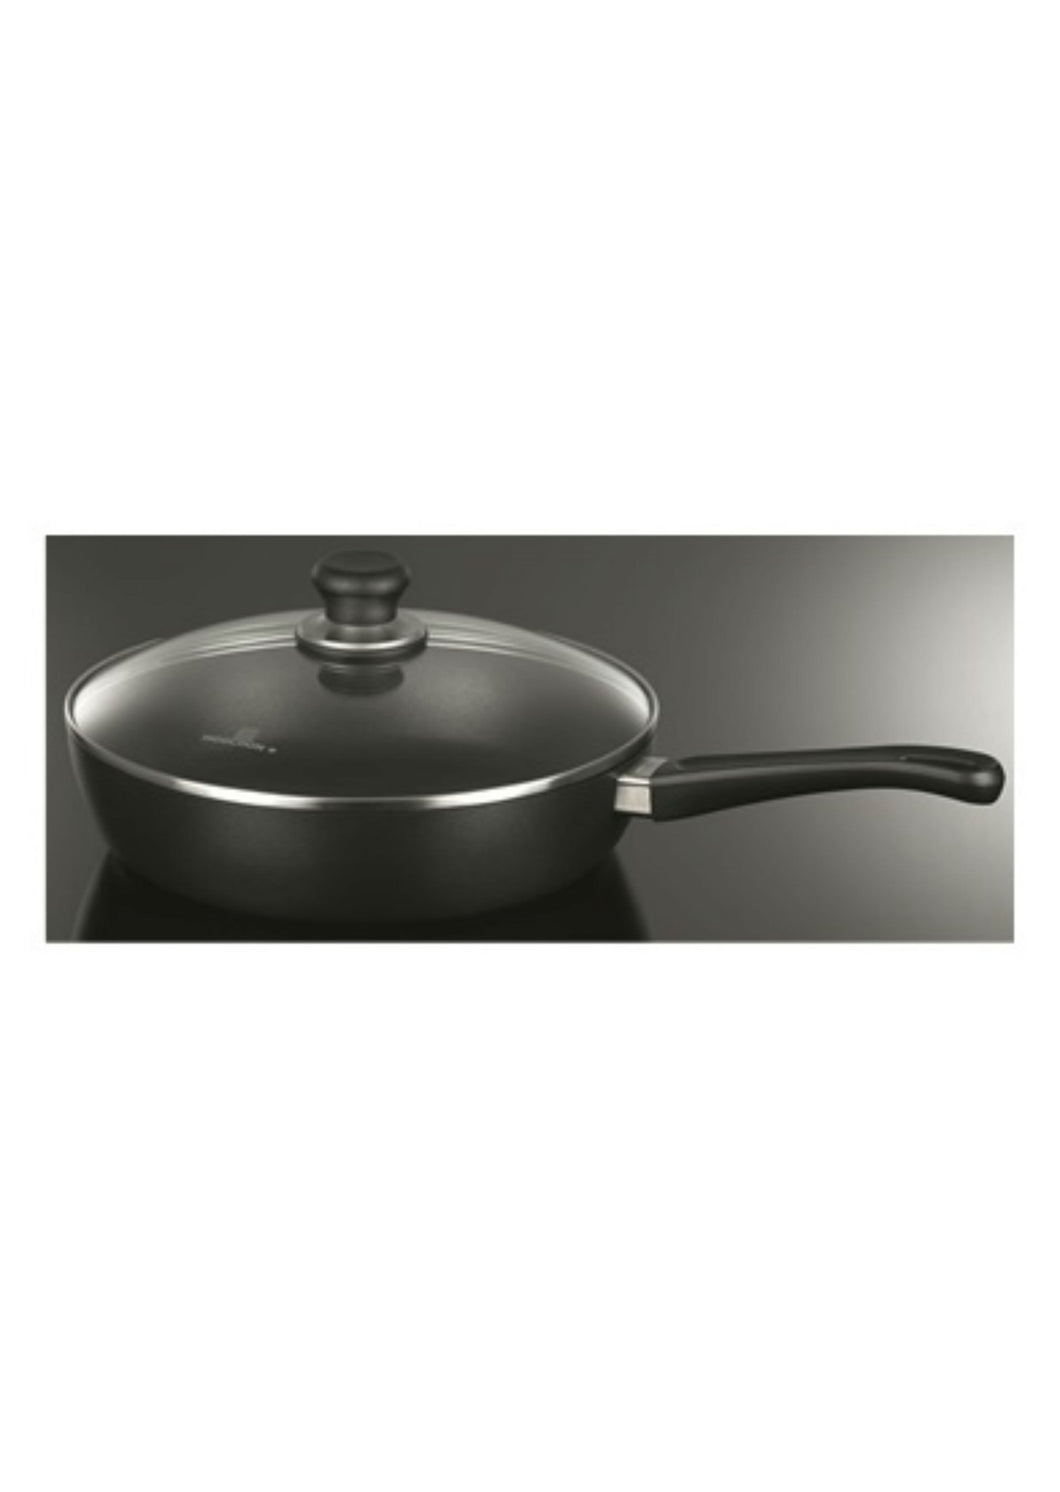 Scanpan Induction+ 28cm Sauté Pan